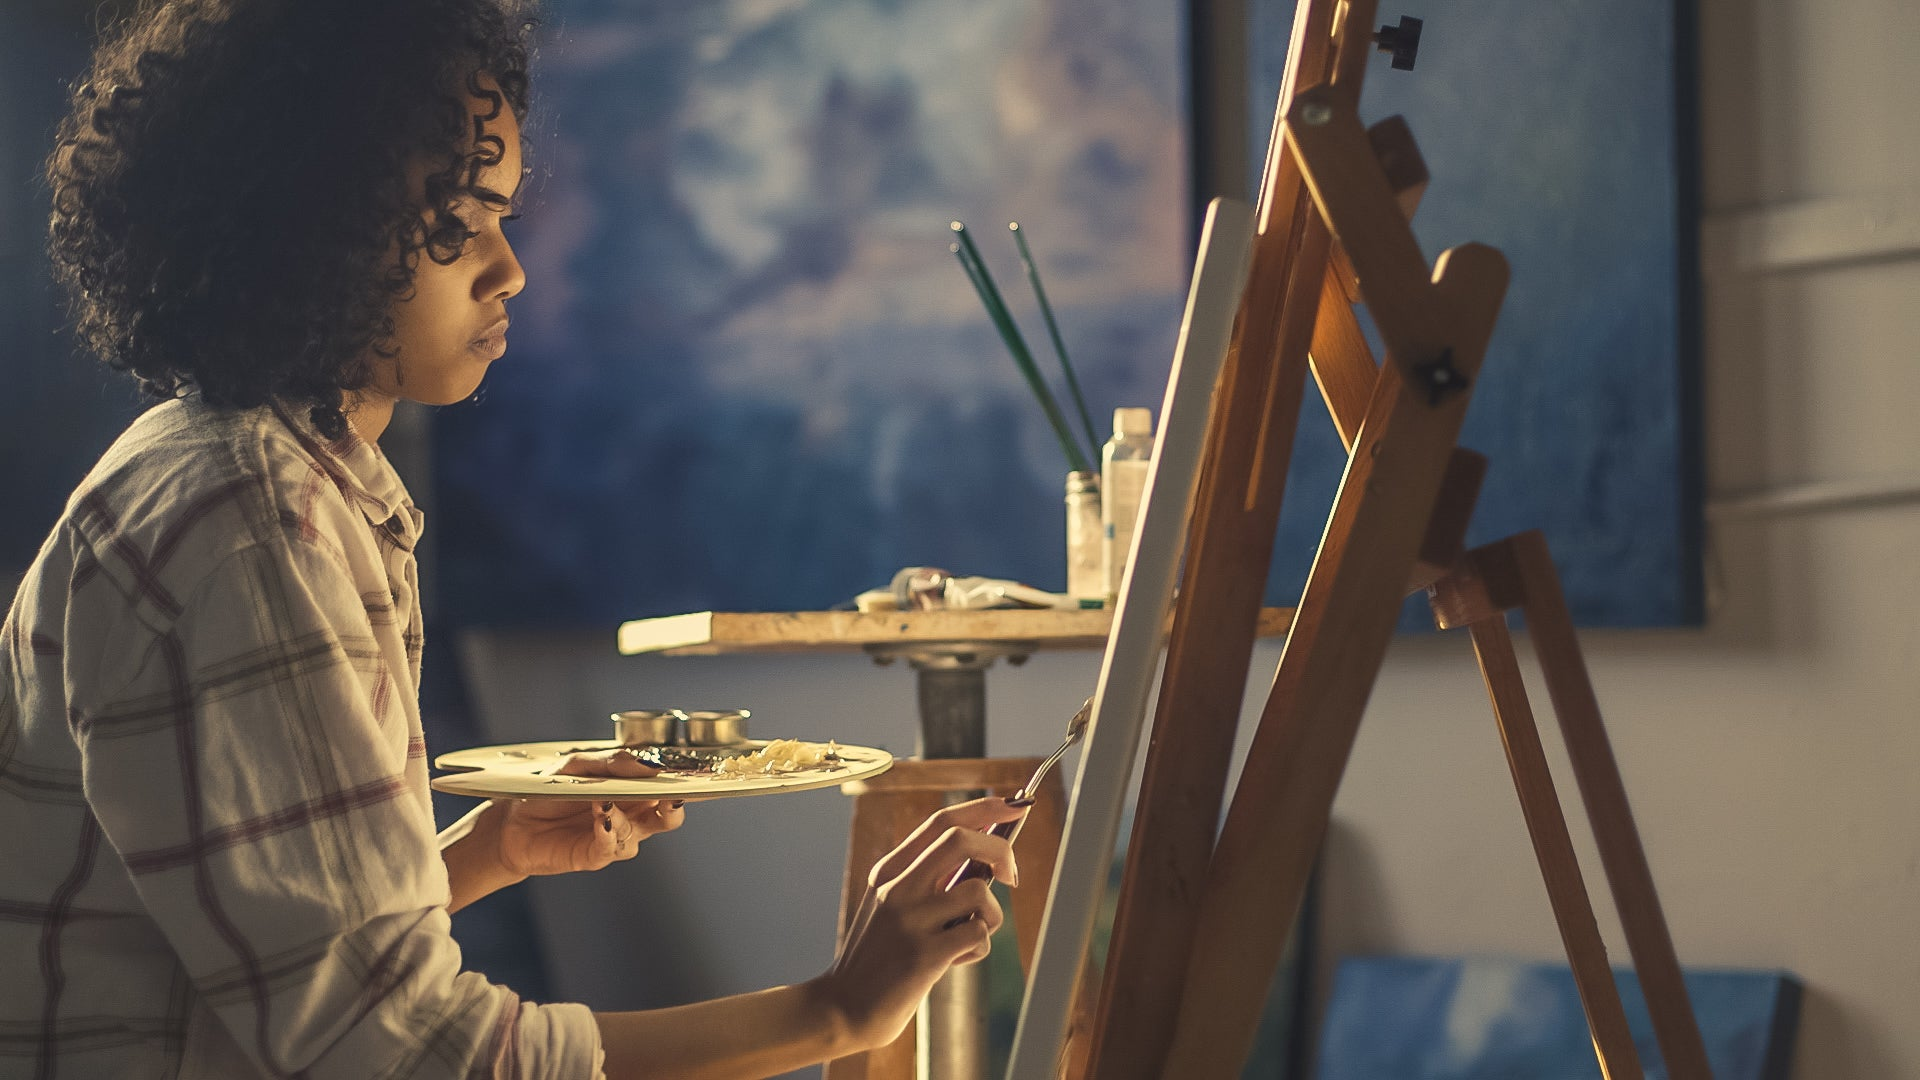 Digital Painting By Numbers itself is a kind of DIY art, also known as coded oil painting, is a special process that processes oil painting into lines and digital symbols. Painters can complete hand-painting by filling the corresponding numbered pigments